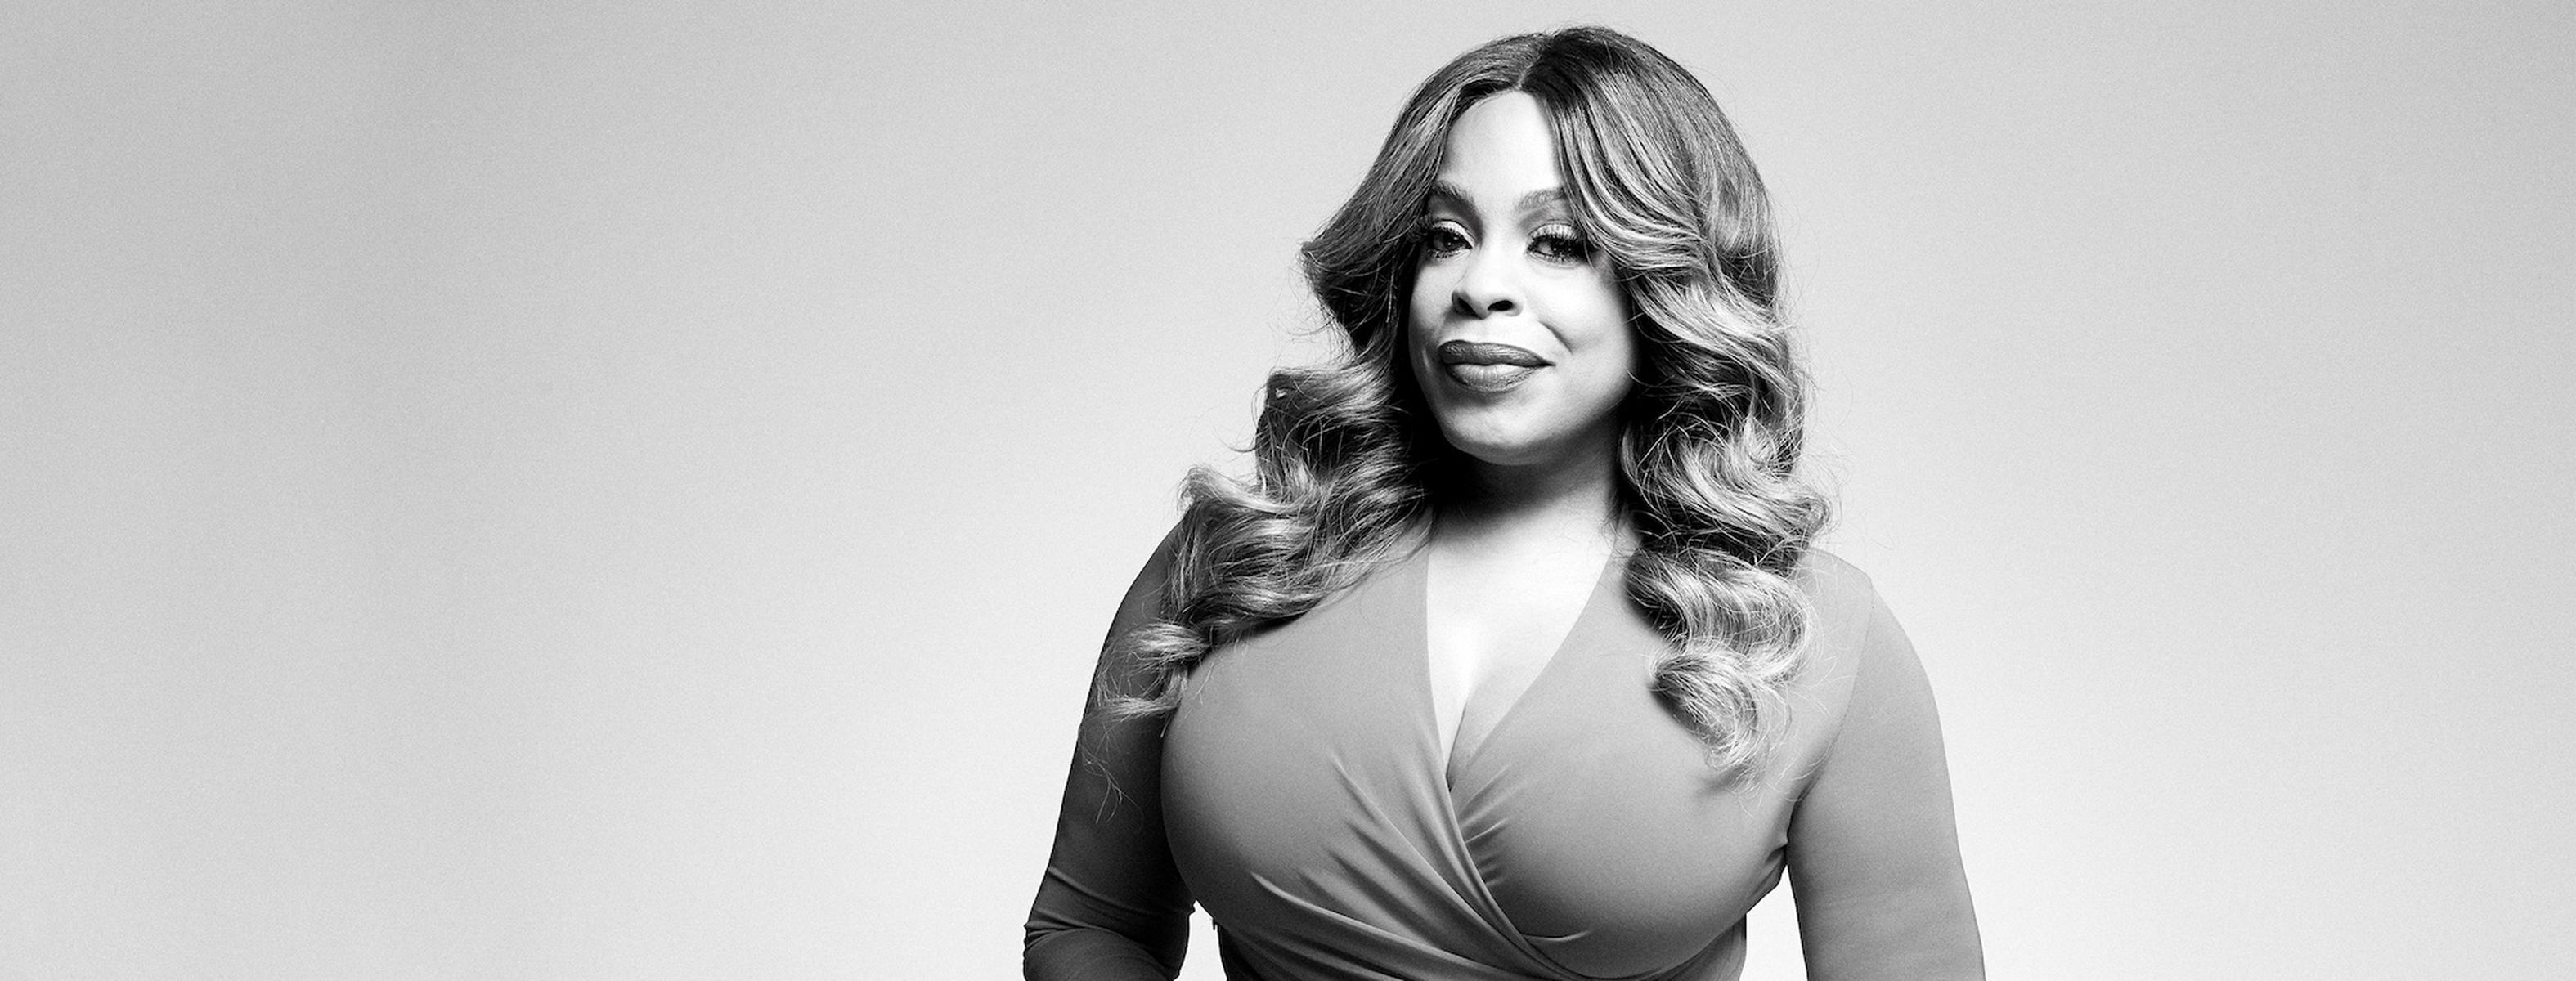 Rulebreaker: How Niecy Nash Worked Hollywood's Expectations